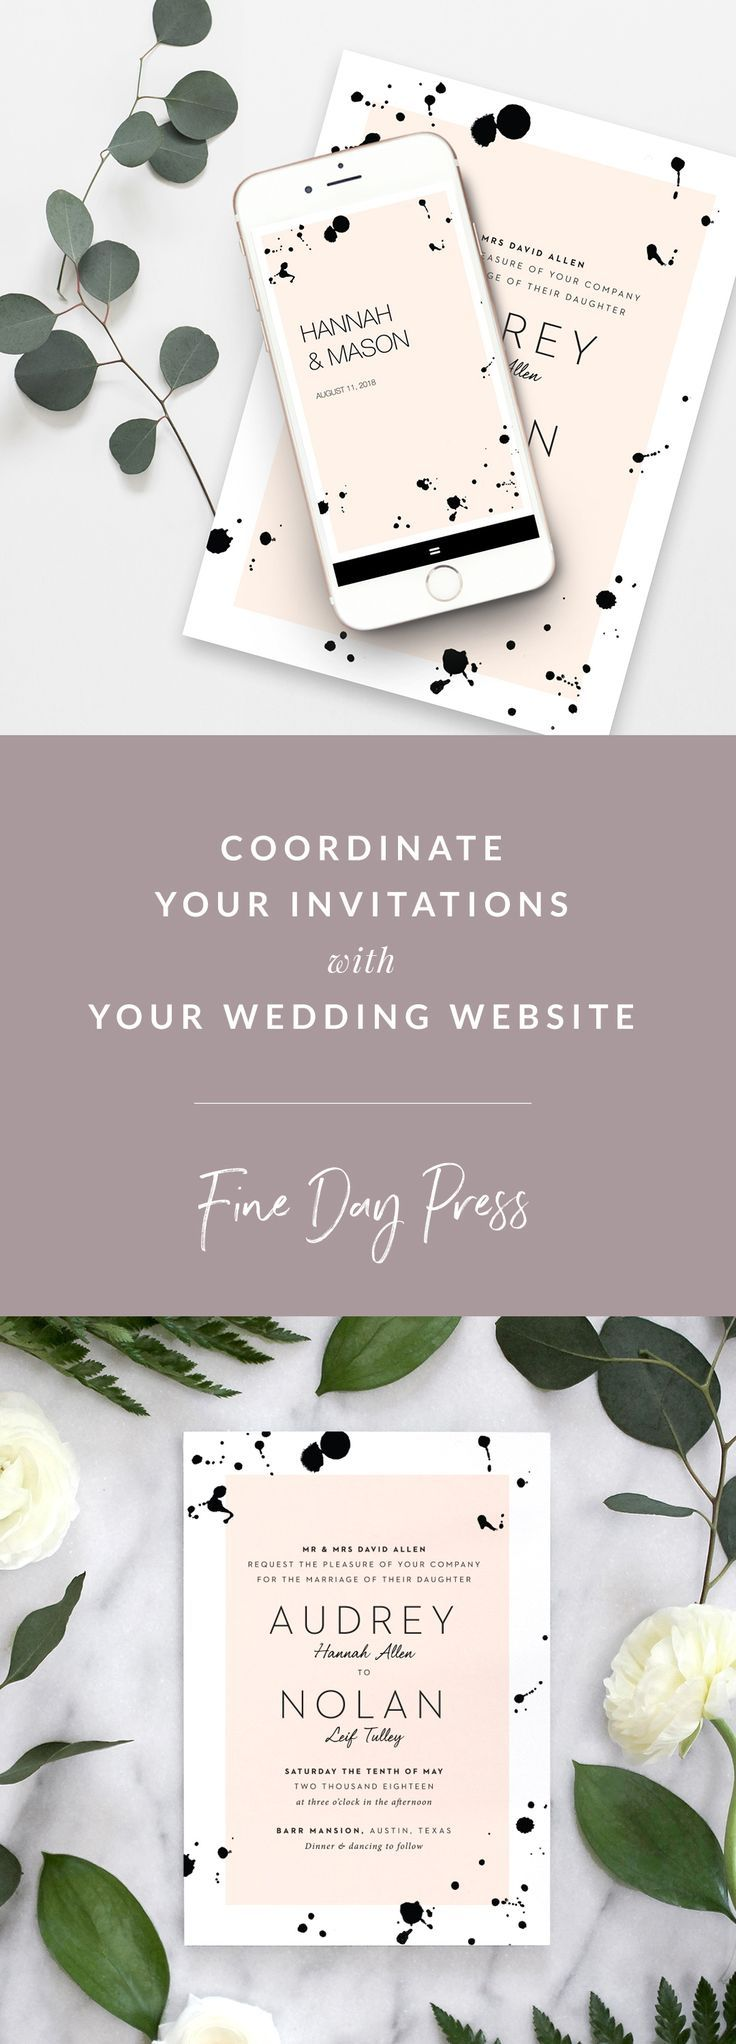 wedding invitation templates in telugu%0A Coordinate Invitations with your Wedding Website with Fine Day Press and  Appy Couple